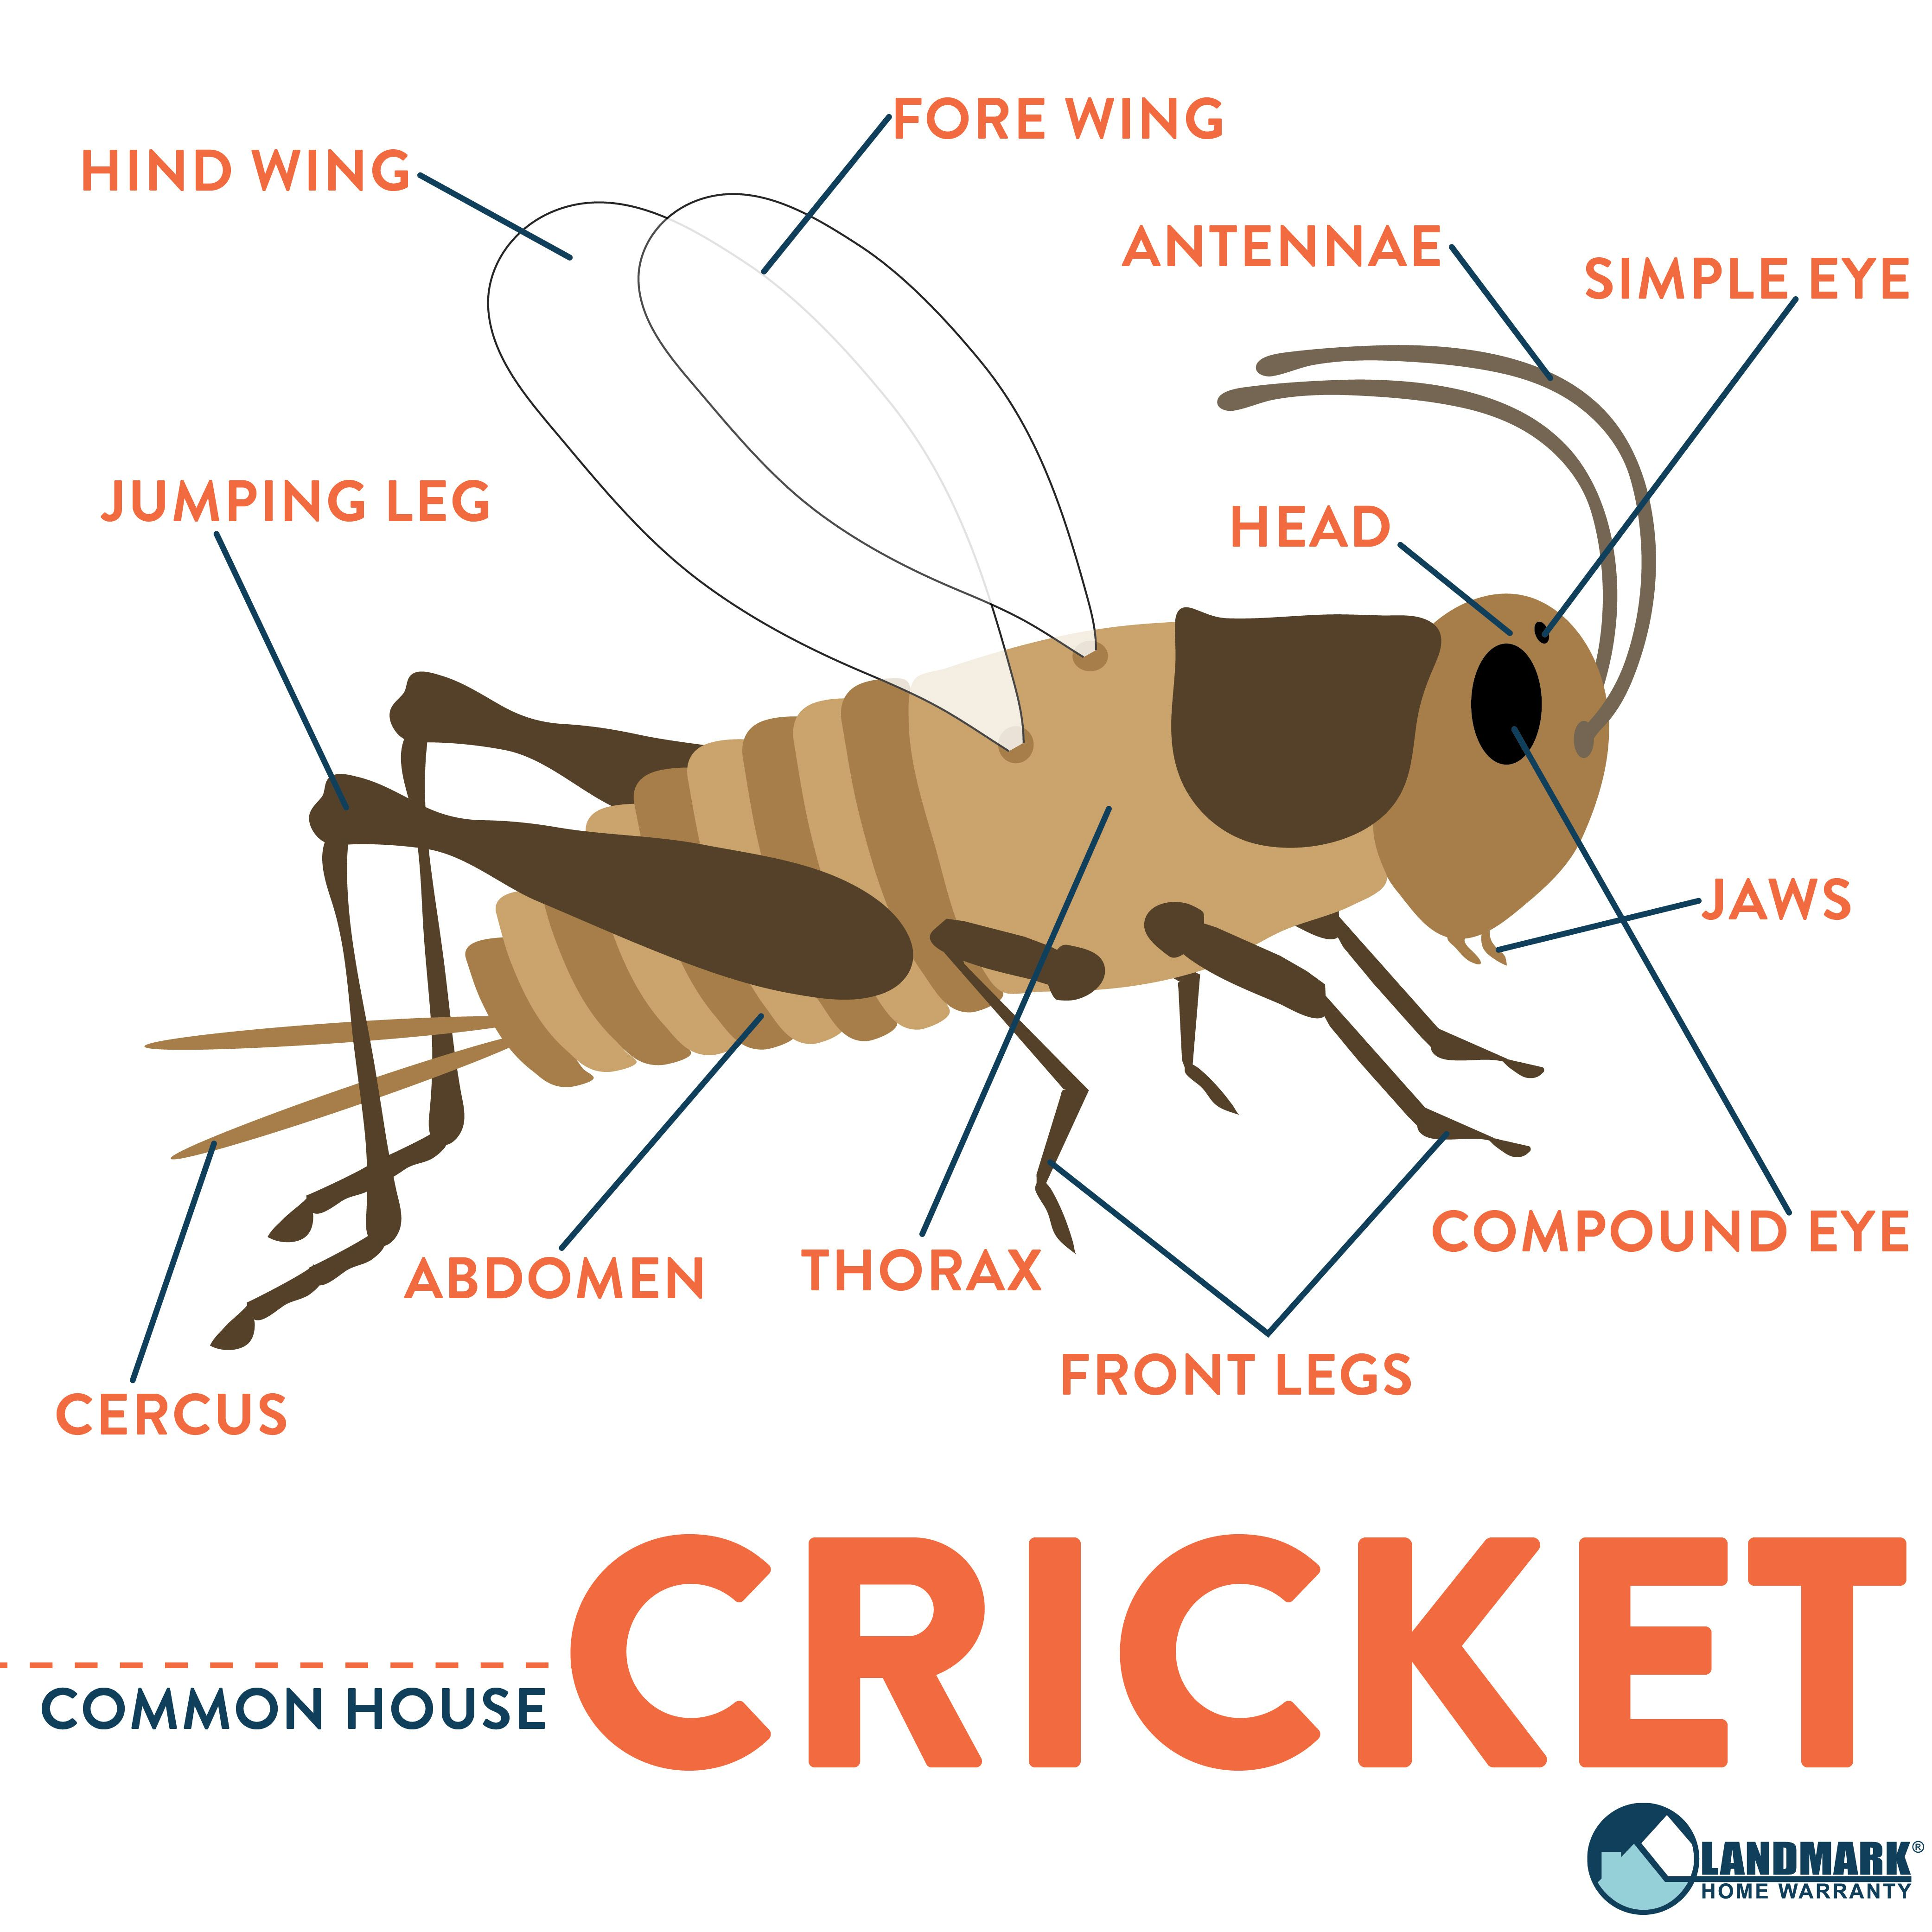 What Does A Cricket Look Like Here S A Handy Diagram To Help You Determine If The Insects In Your Home Are Crickets Cricket Infestation Infestations Learning